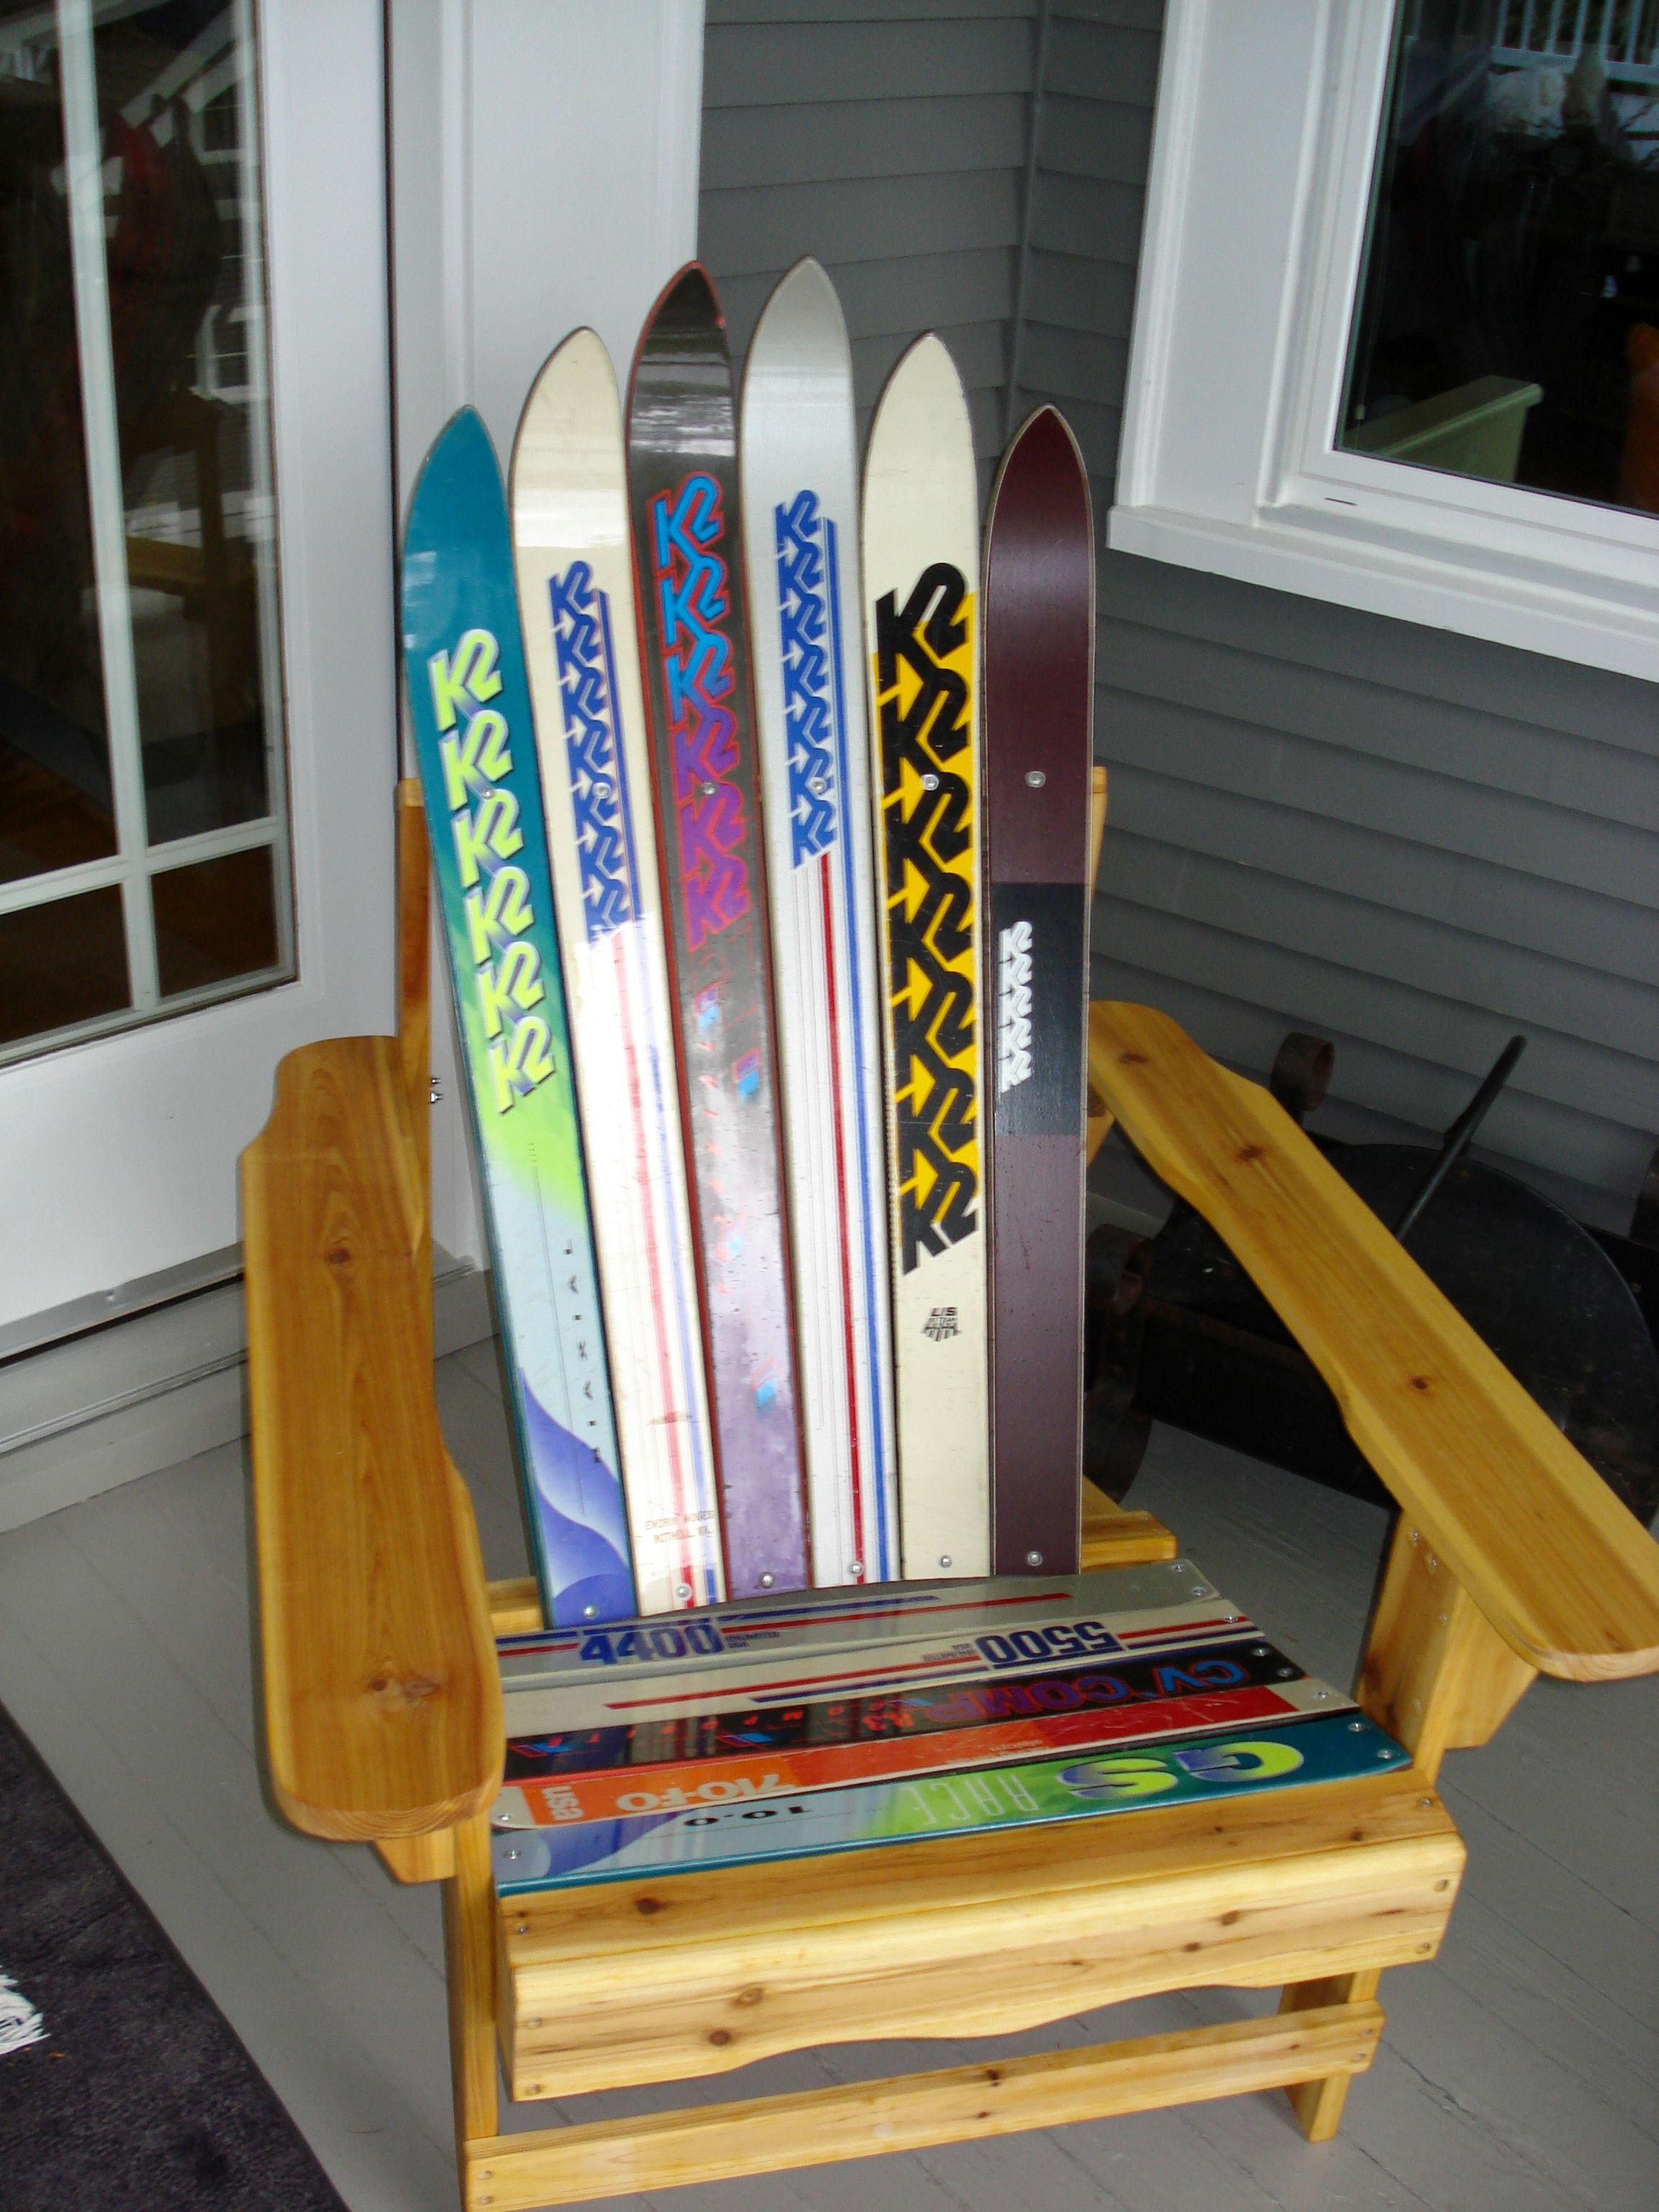 Genial A Adirondack Chair Kit With Family Skis Used   Skis Are Tough On Saw Blades!